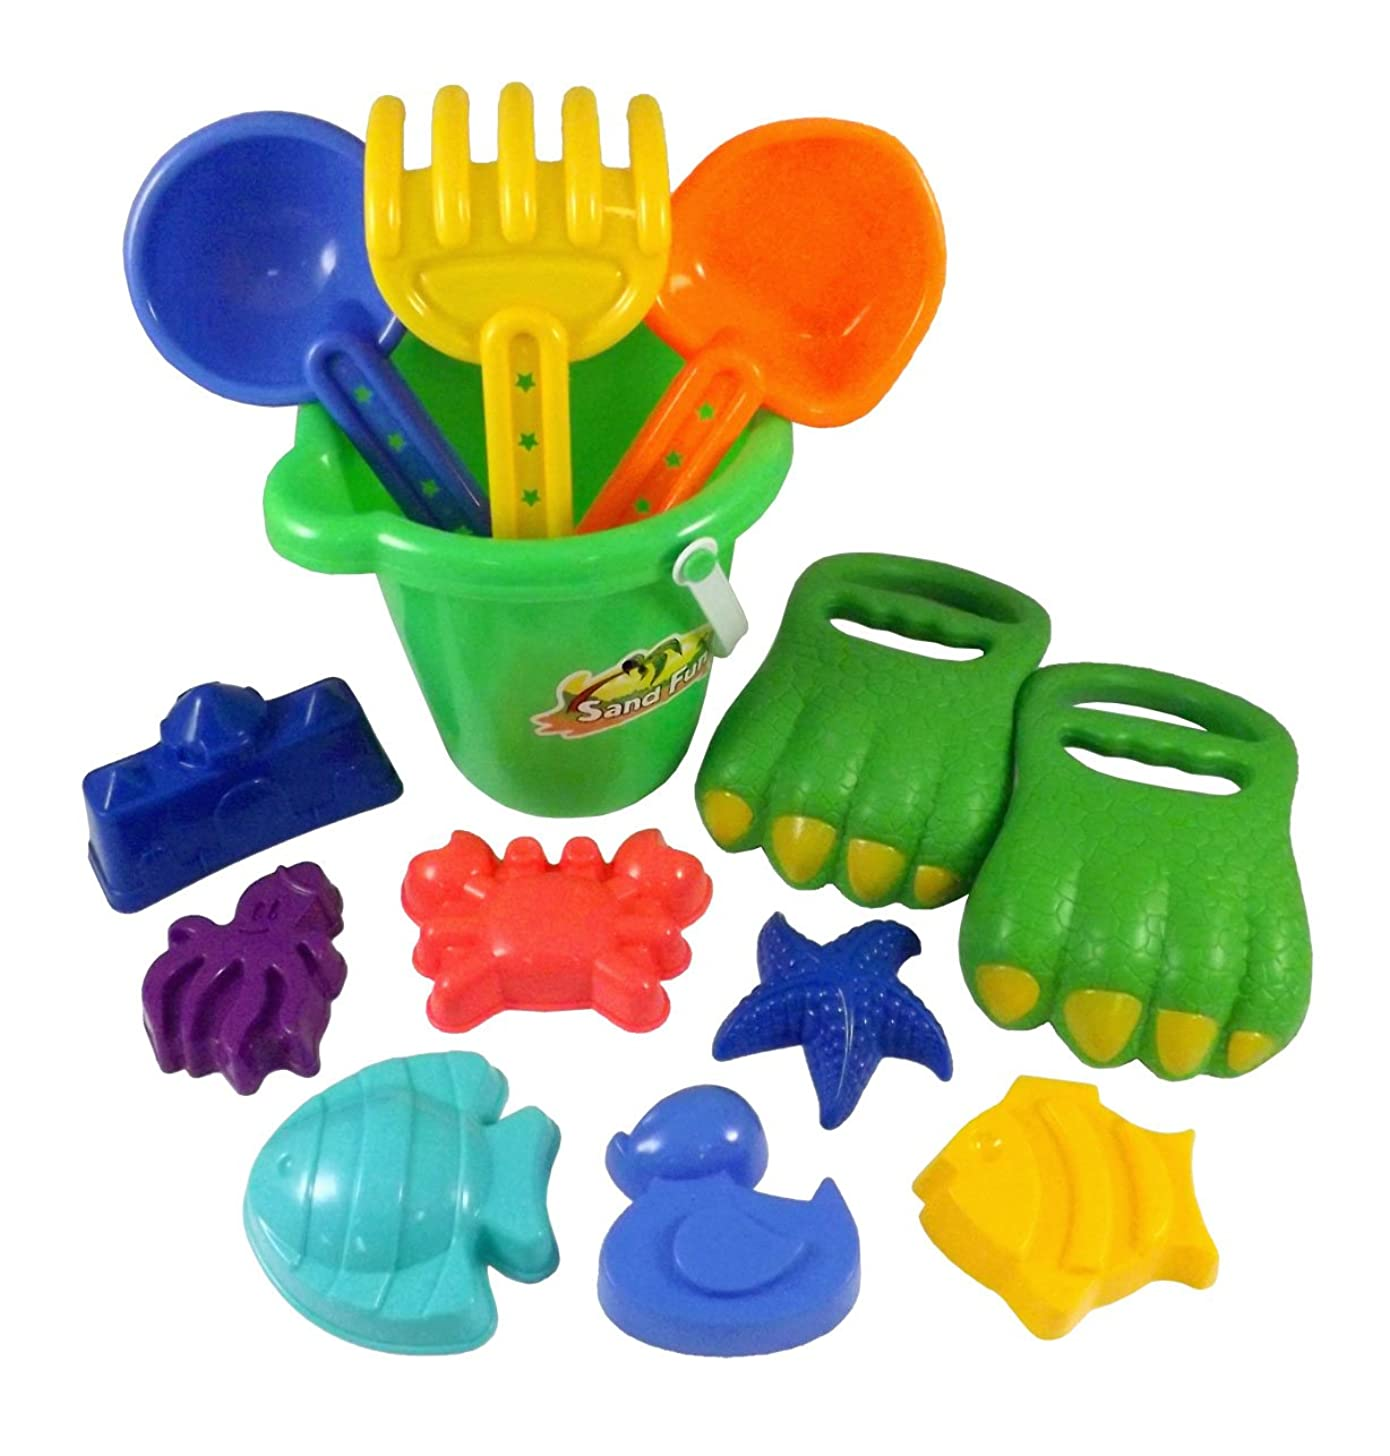 Liberty Imports Dinosaur Sand Digger Scoop Claw Beach Toy Set - 13 Piece with Bucket, Shovels, Rakes, Molds (Assorted Colors)